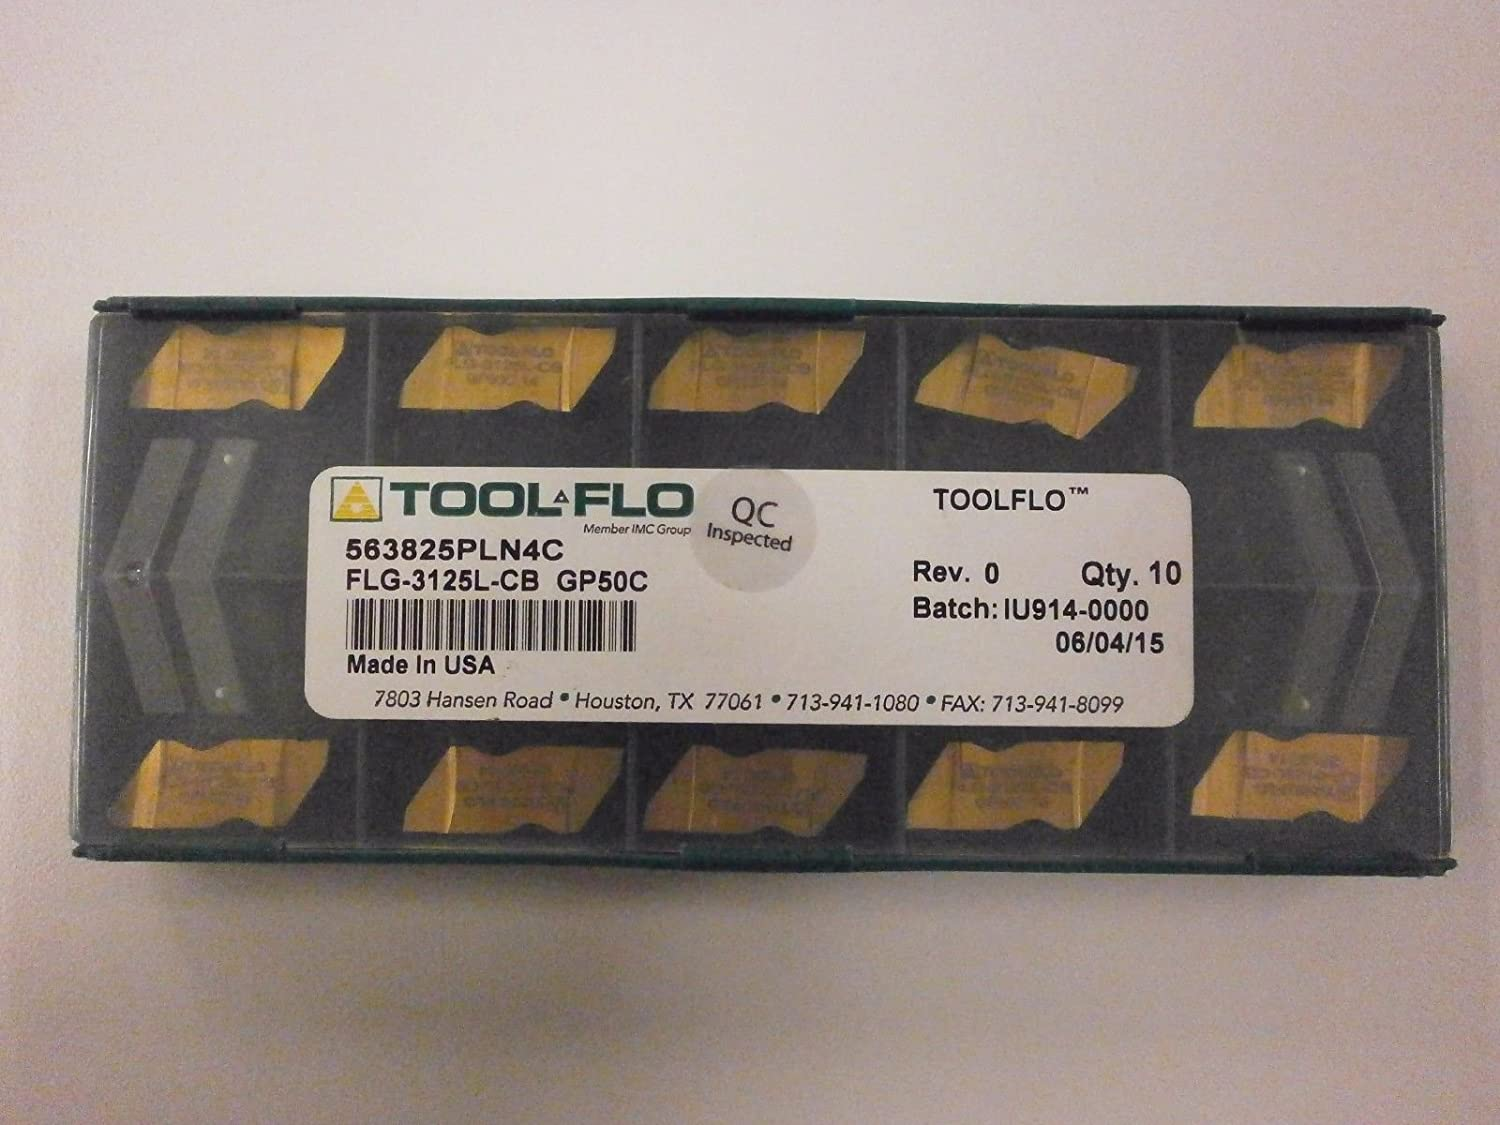 10pc ToolFlo FLG 3125L-CB GP50 Top Notch Carbide Grooving Inserts NG 3125LCB